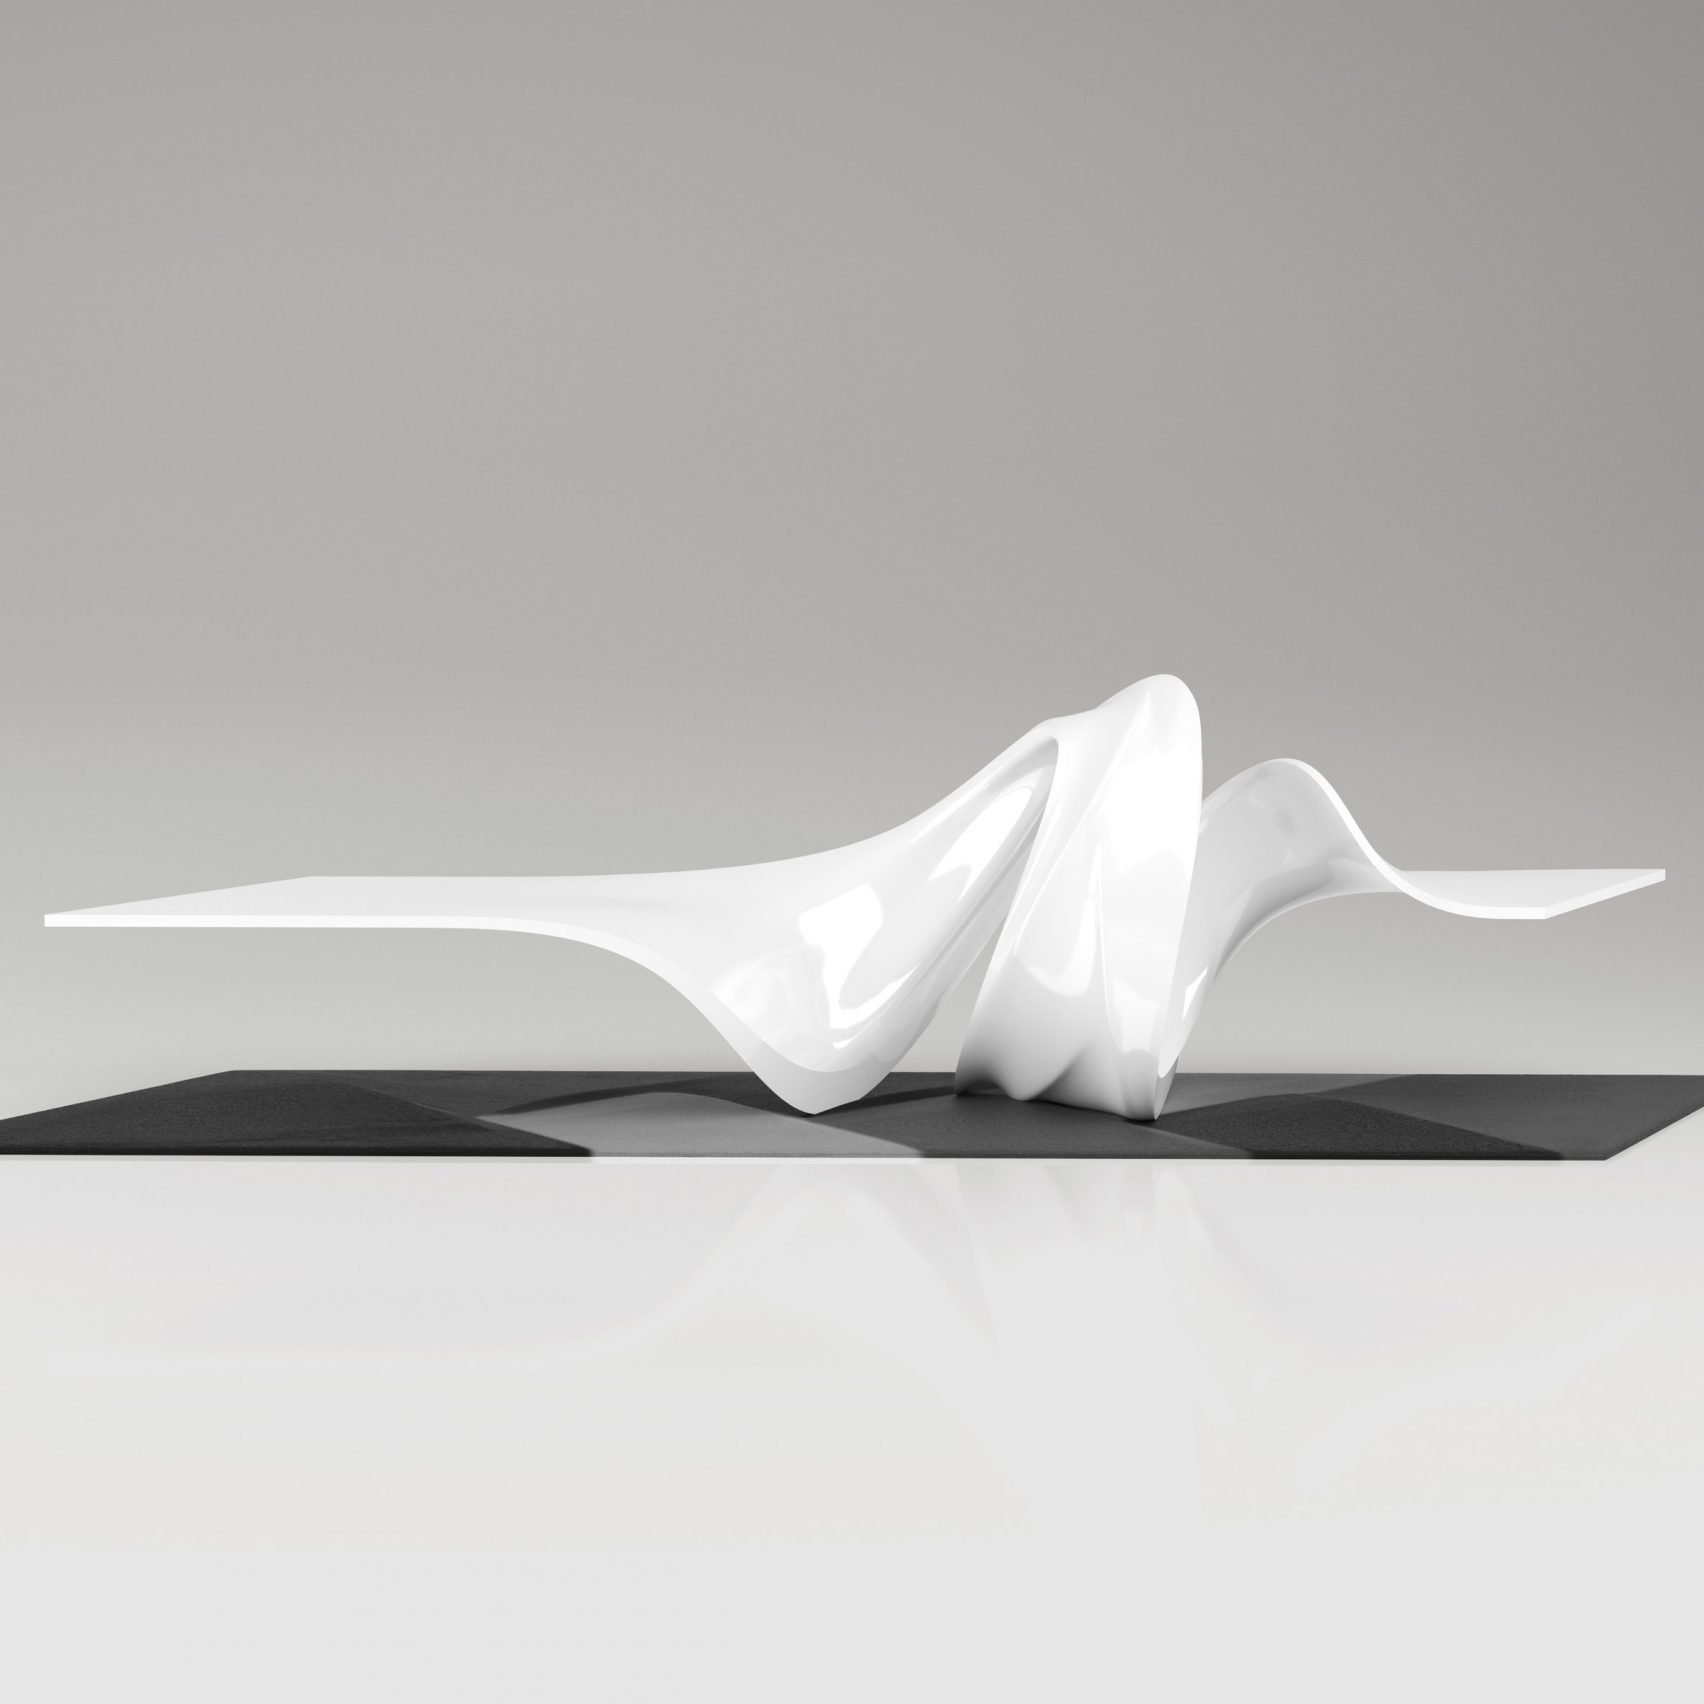 Le-a coffee table by Leblon Delienne x Zaha Hadid